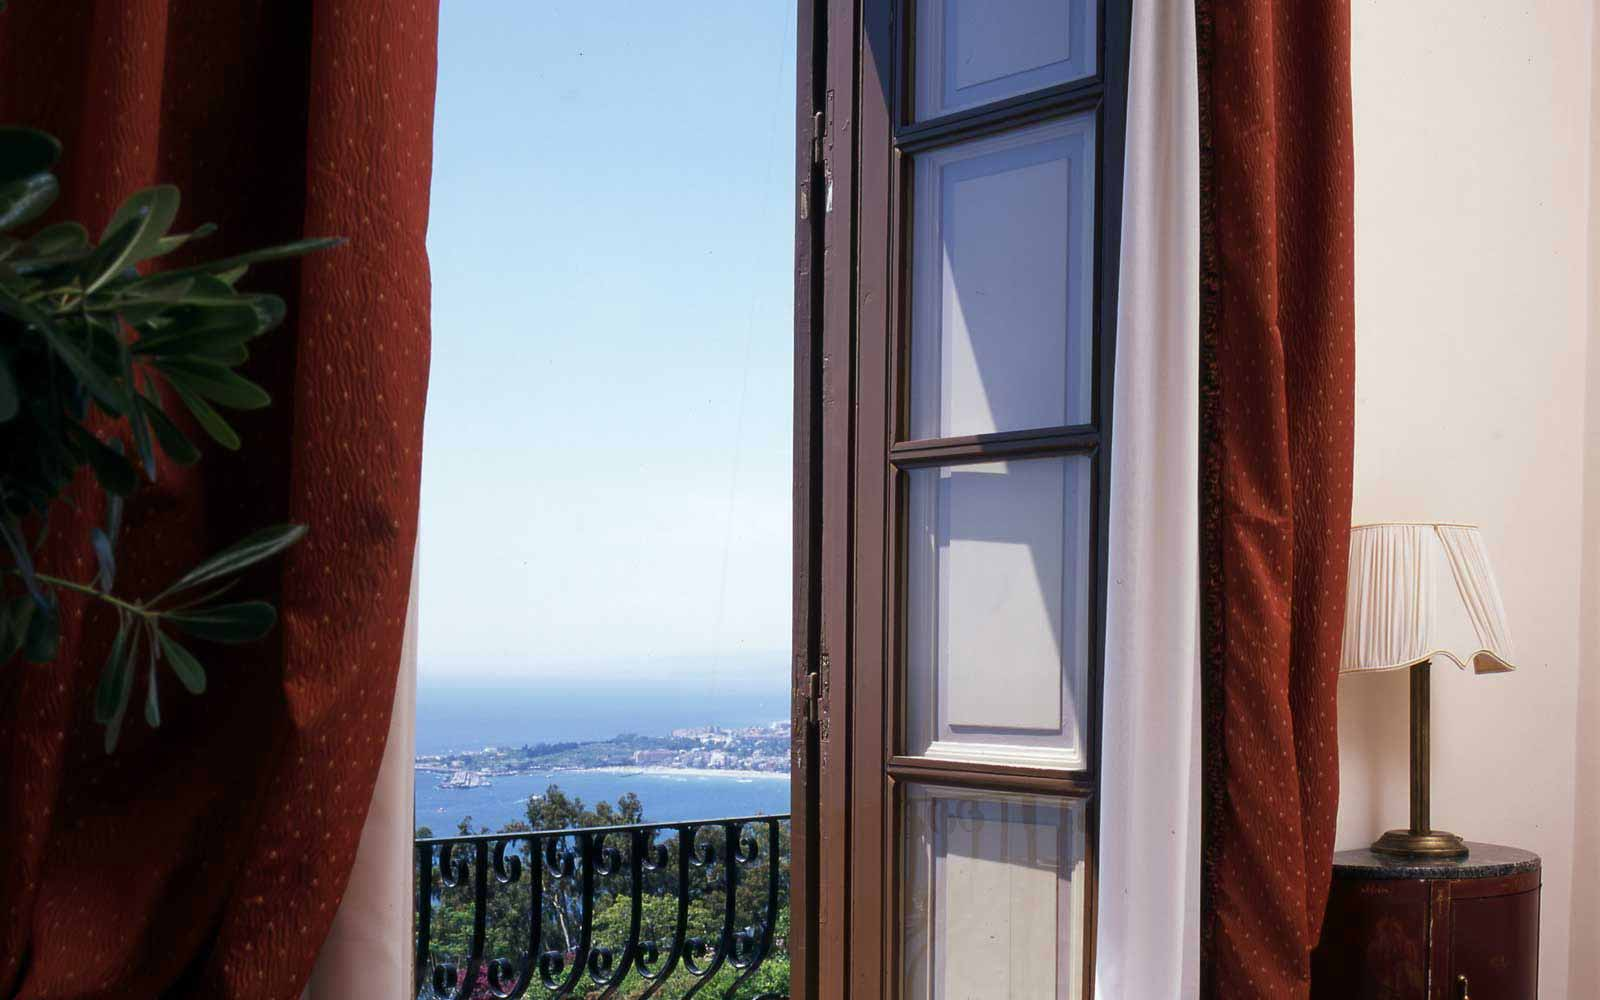 View from a balcony at San Domenico Palace Hotel